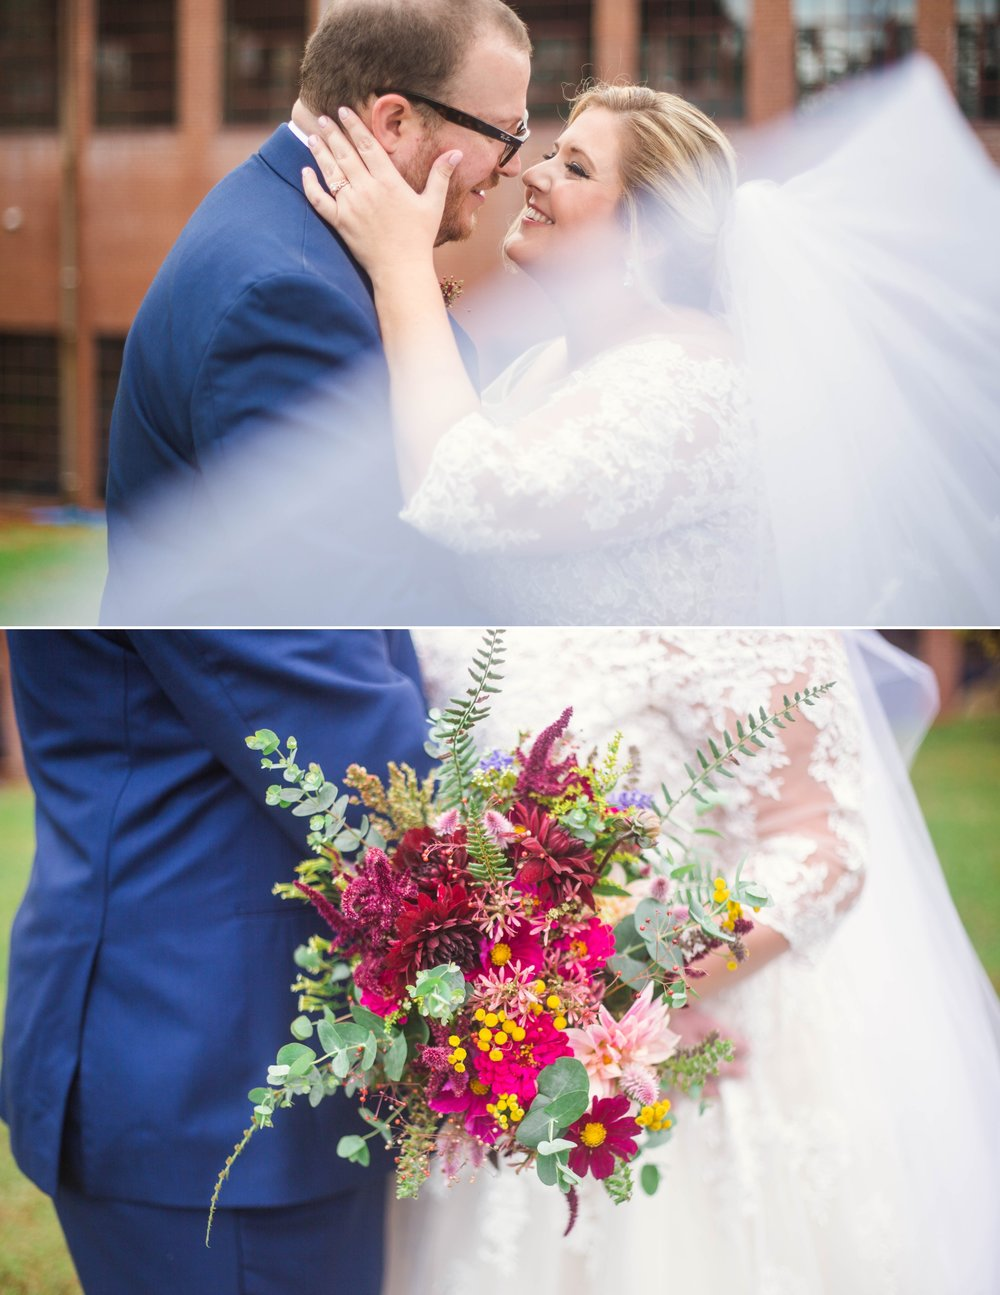 Veil shot - Brittany + Douglas - Forest Hall at Chatham Mills in Pittsboro, NC - Raleigh North Carolina Wedding Photographer